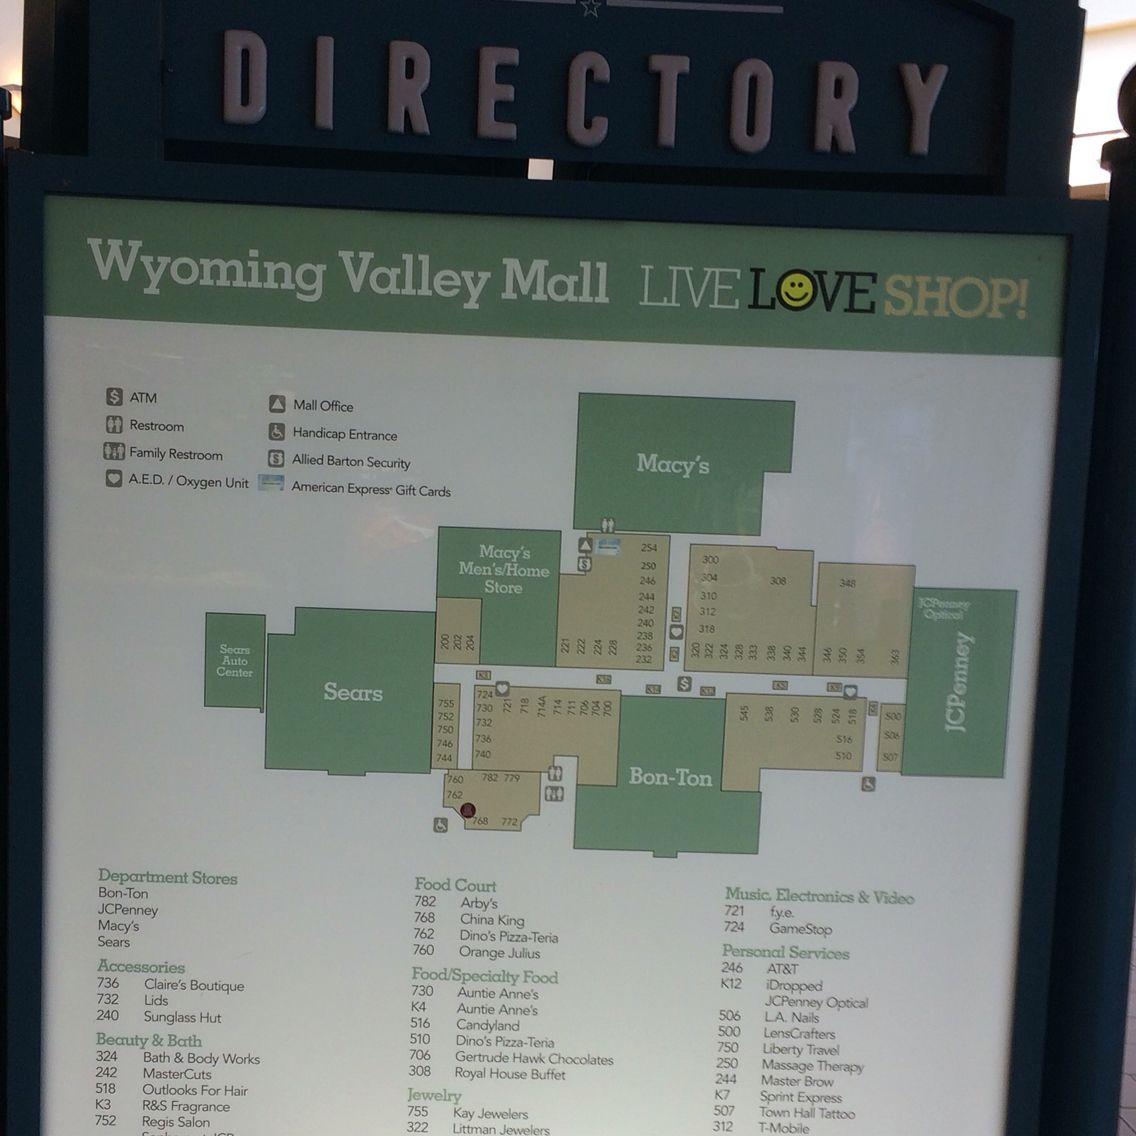 wyoming valley mall map today s wilkes barre area wyoming valley mall map today s wilkes barre area wyoming and maps